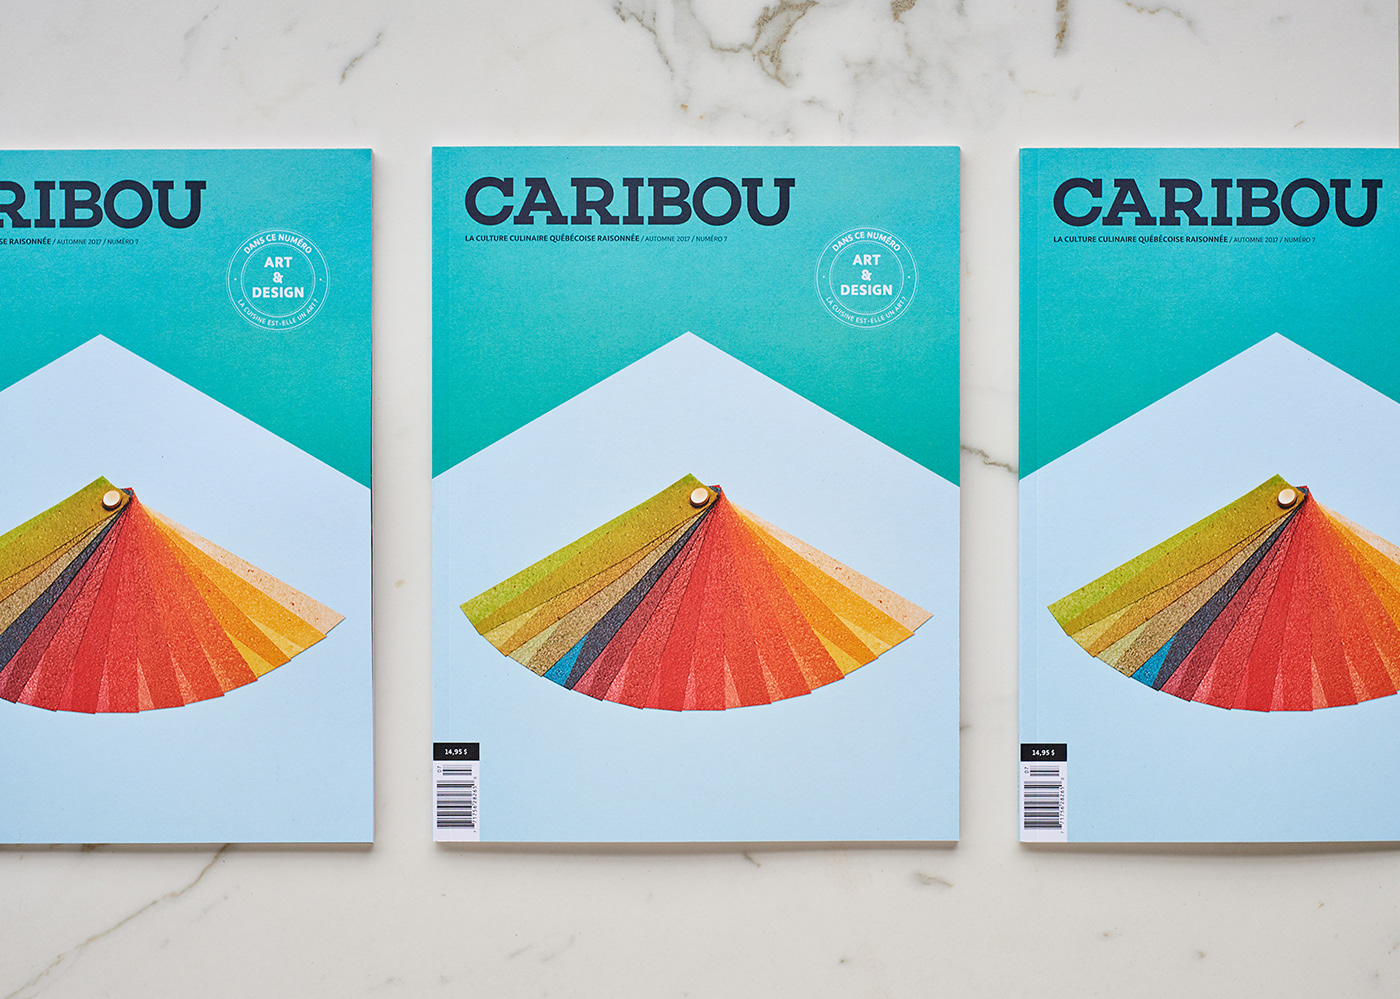 art direction  Colourful  Food  gastronomy graphic design  ILLUSTRATION  Layout magazine Montreal Photography